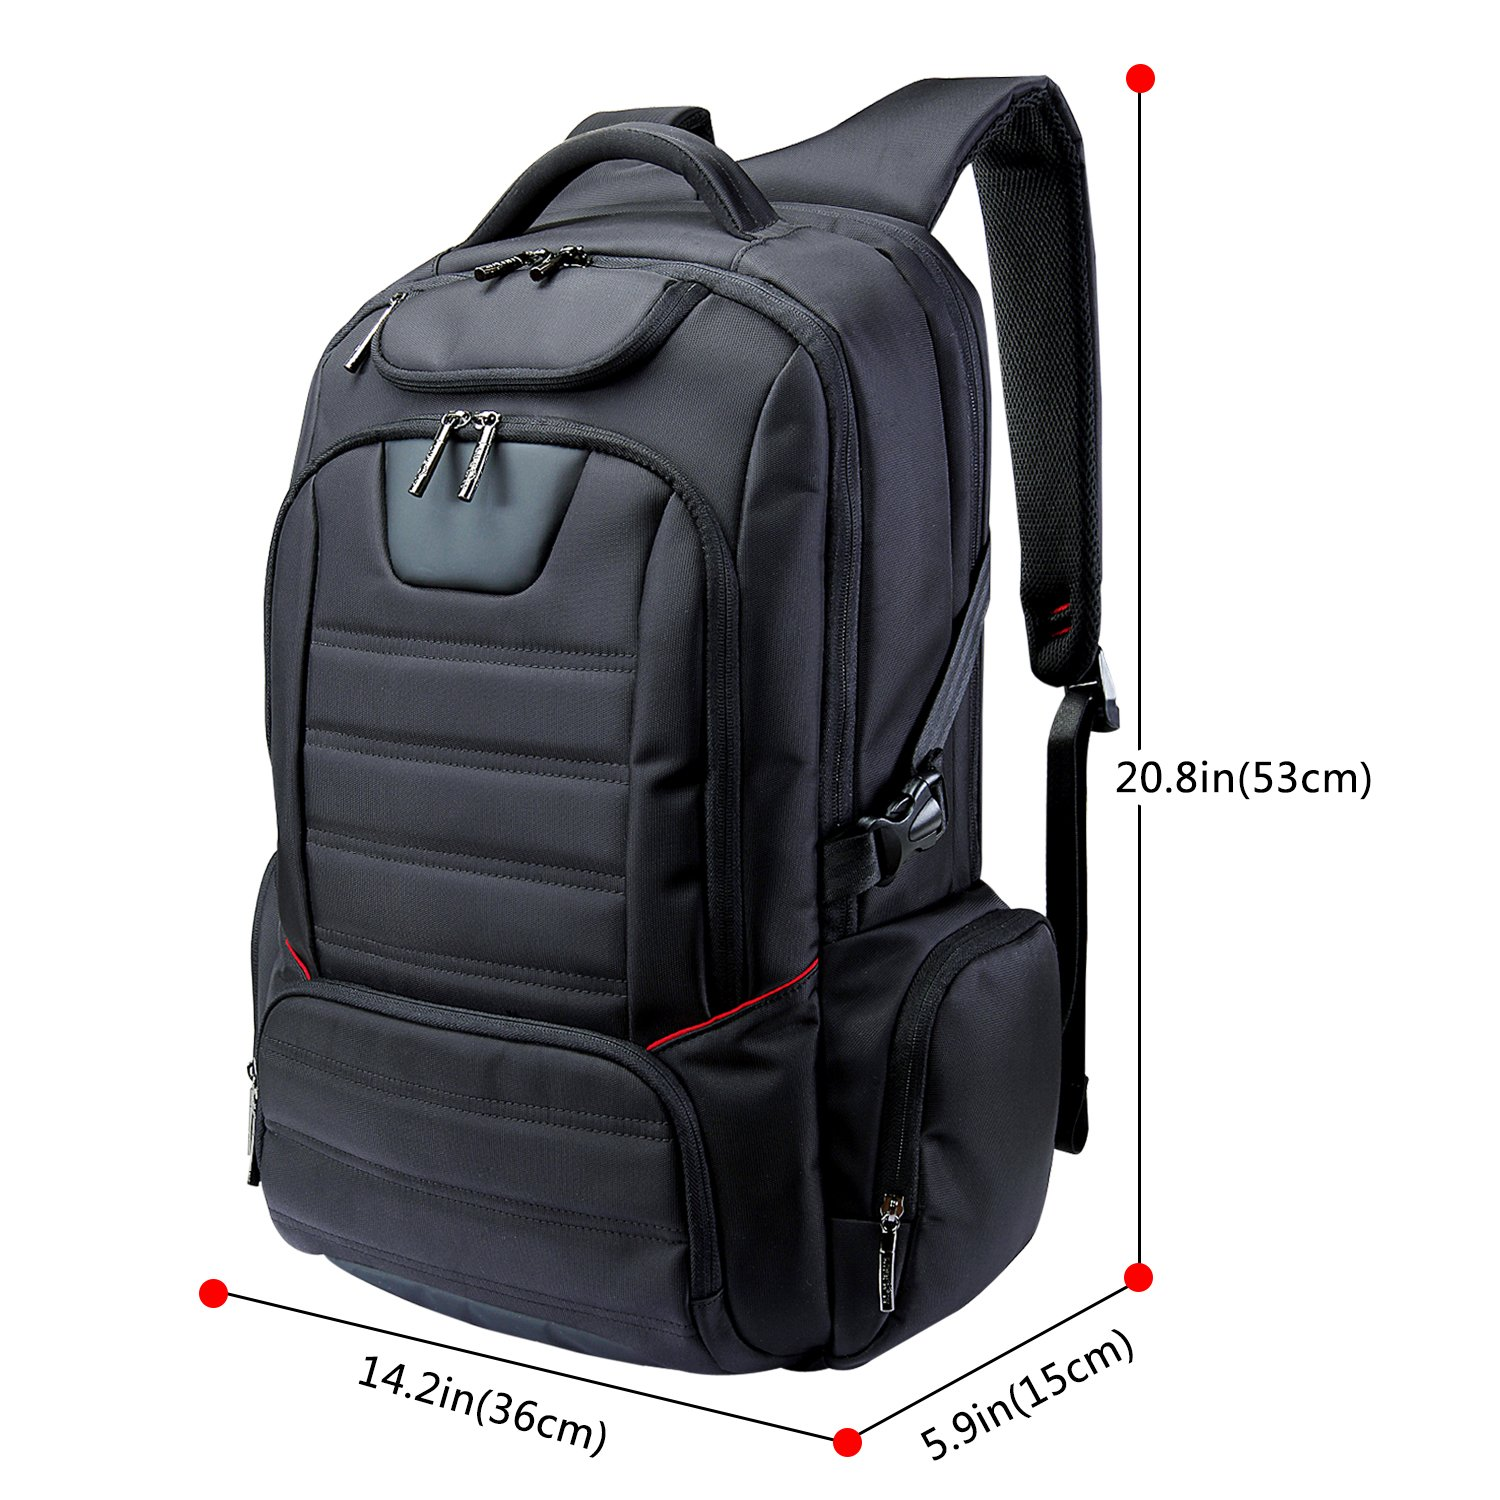 """Lifewit Men Large Laptop Backpack Water Resistant Travel School Business College Computer Bag Carry-on Fits Up to 17.3-18.4 Inch, Black (18.4"""" Black) by Lifewit (Image #2)"""